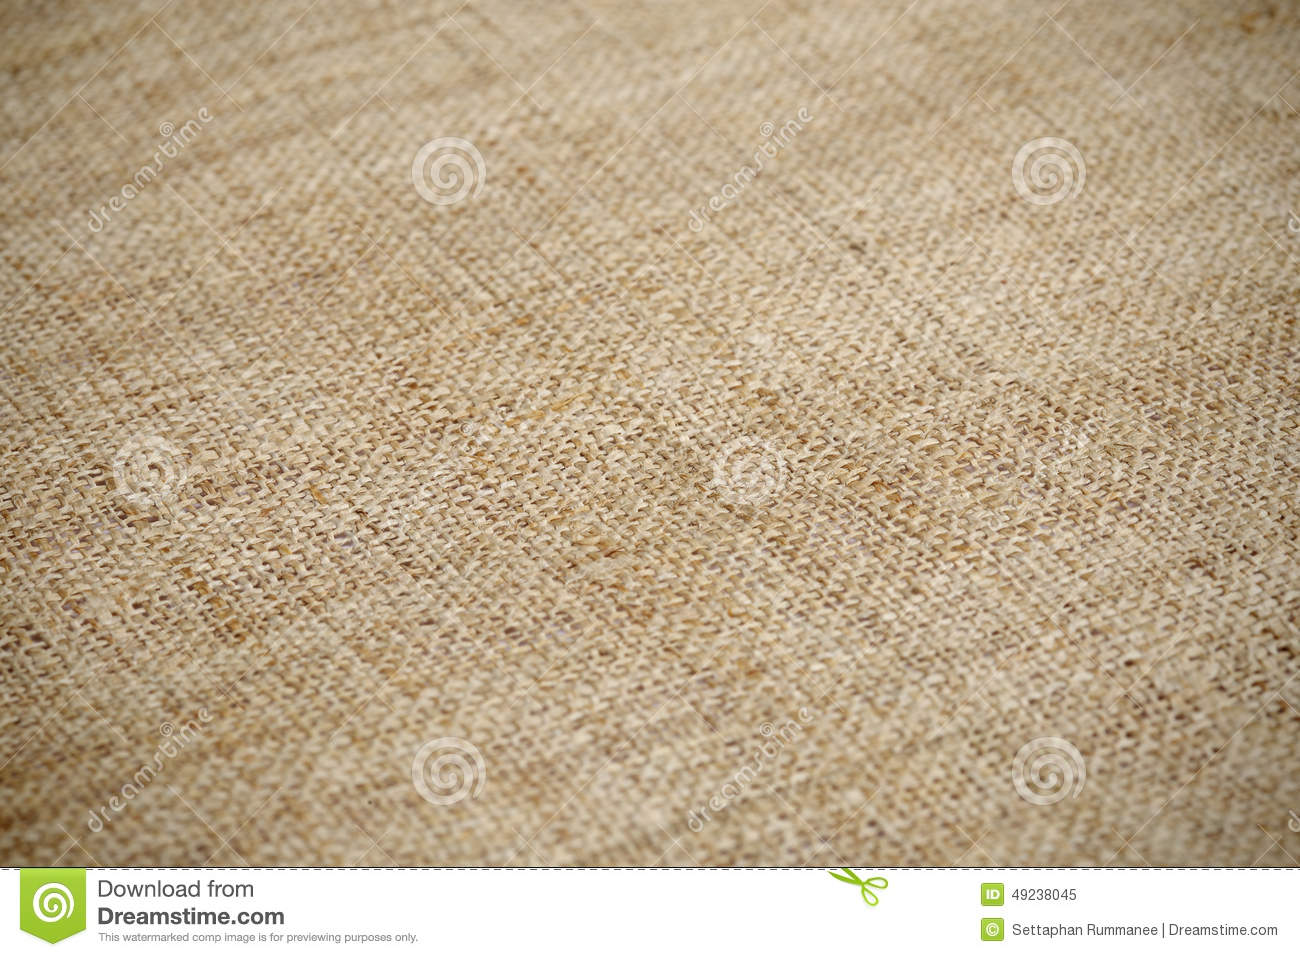 Linen Background Texture Free Stock Photos Download 9 467: Natural Linen Texture For The Background Stock Image